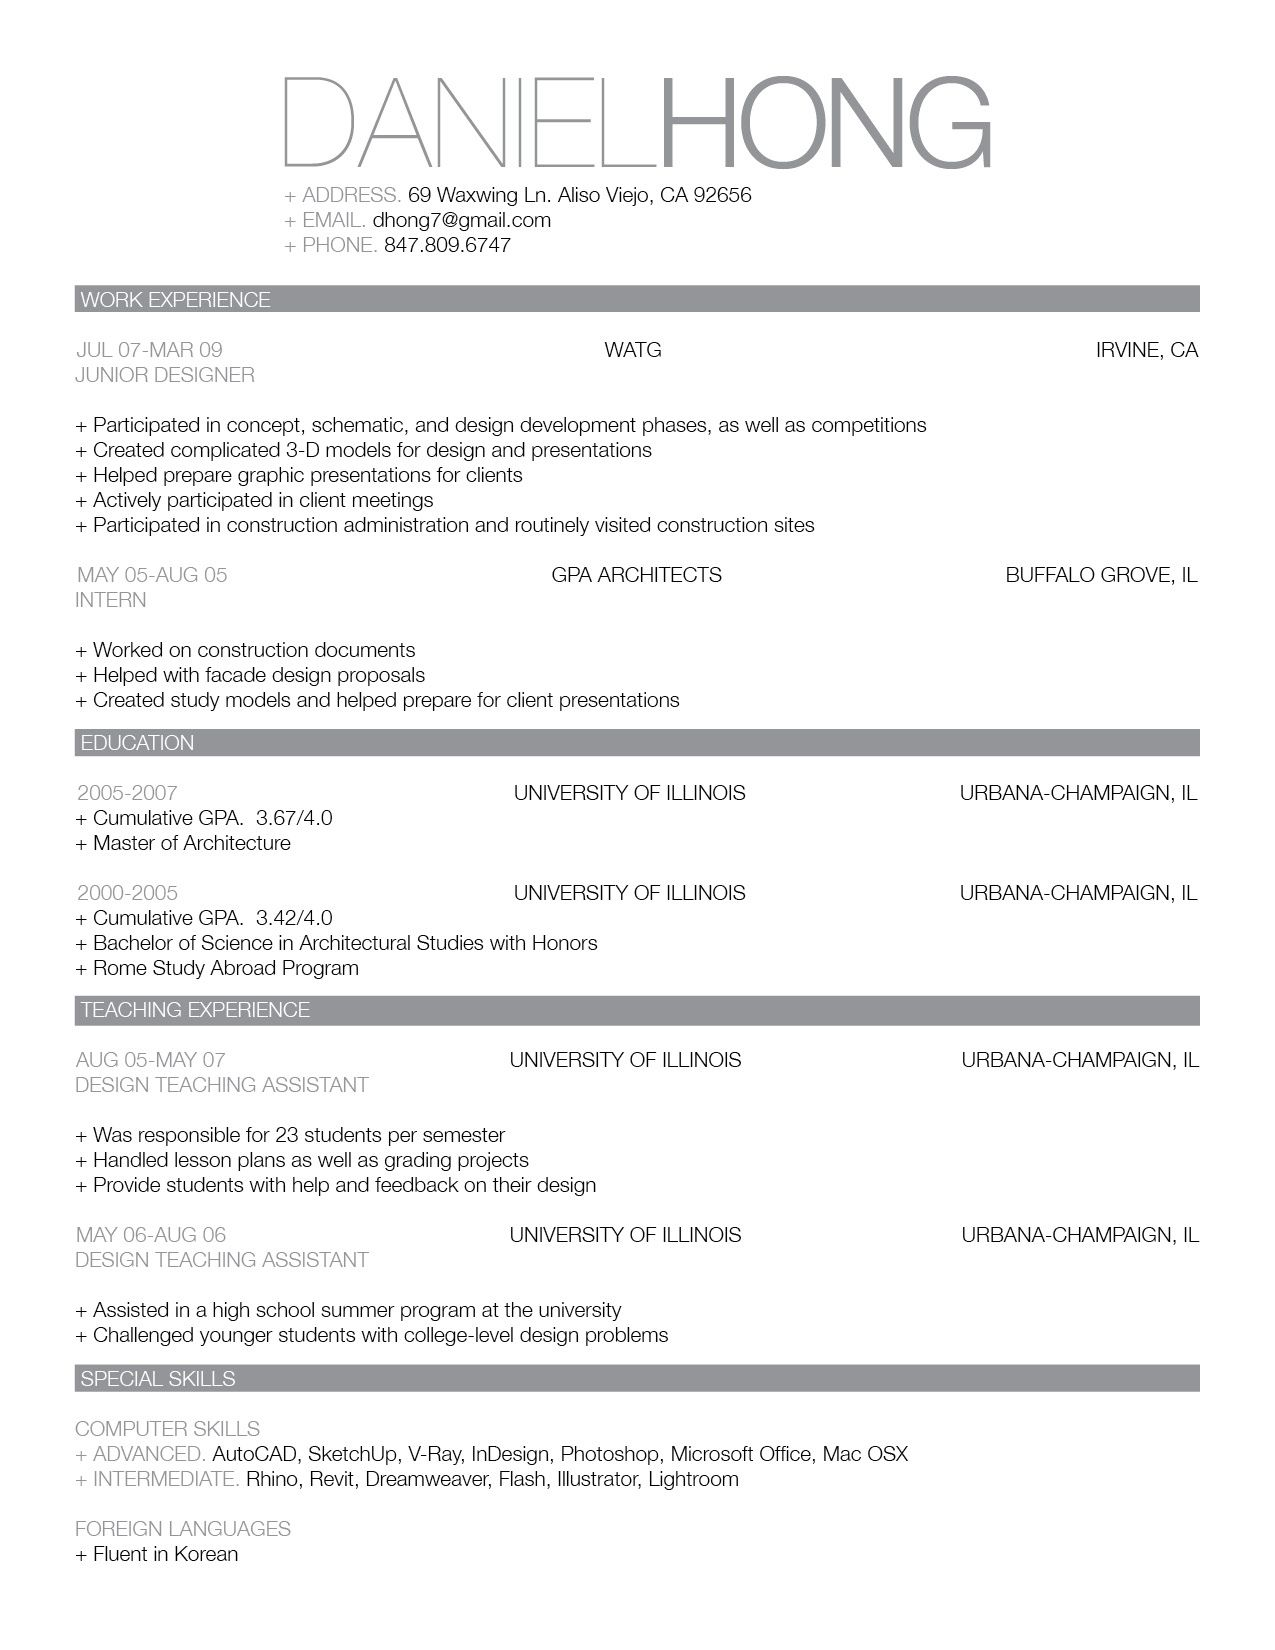 Resume example singapore examples of resumes updated cv and work sample resume resume templates and yelopaper Image collections